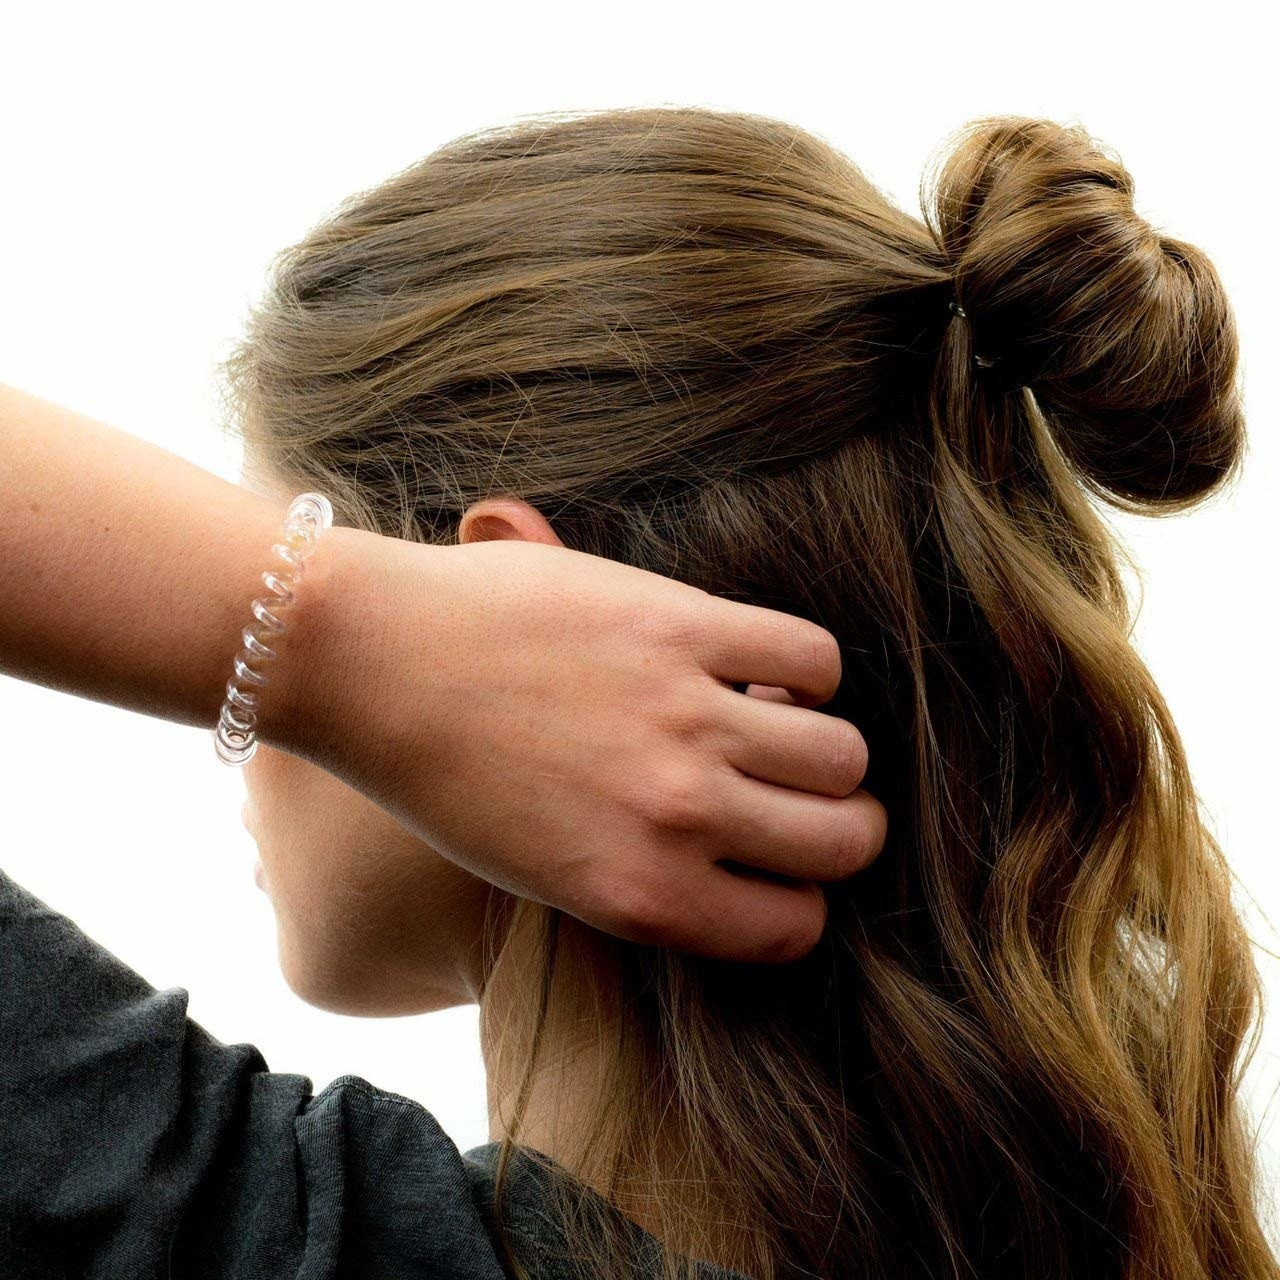 model with top half of hair up in a messy bun and the phone cord-like band on wrist